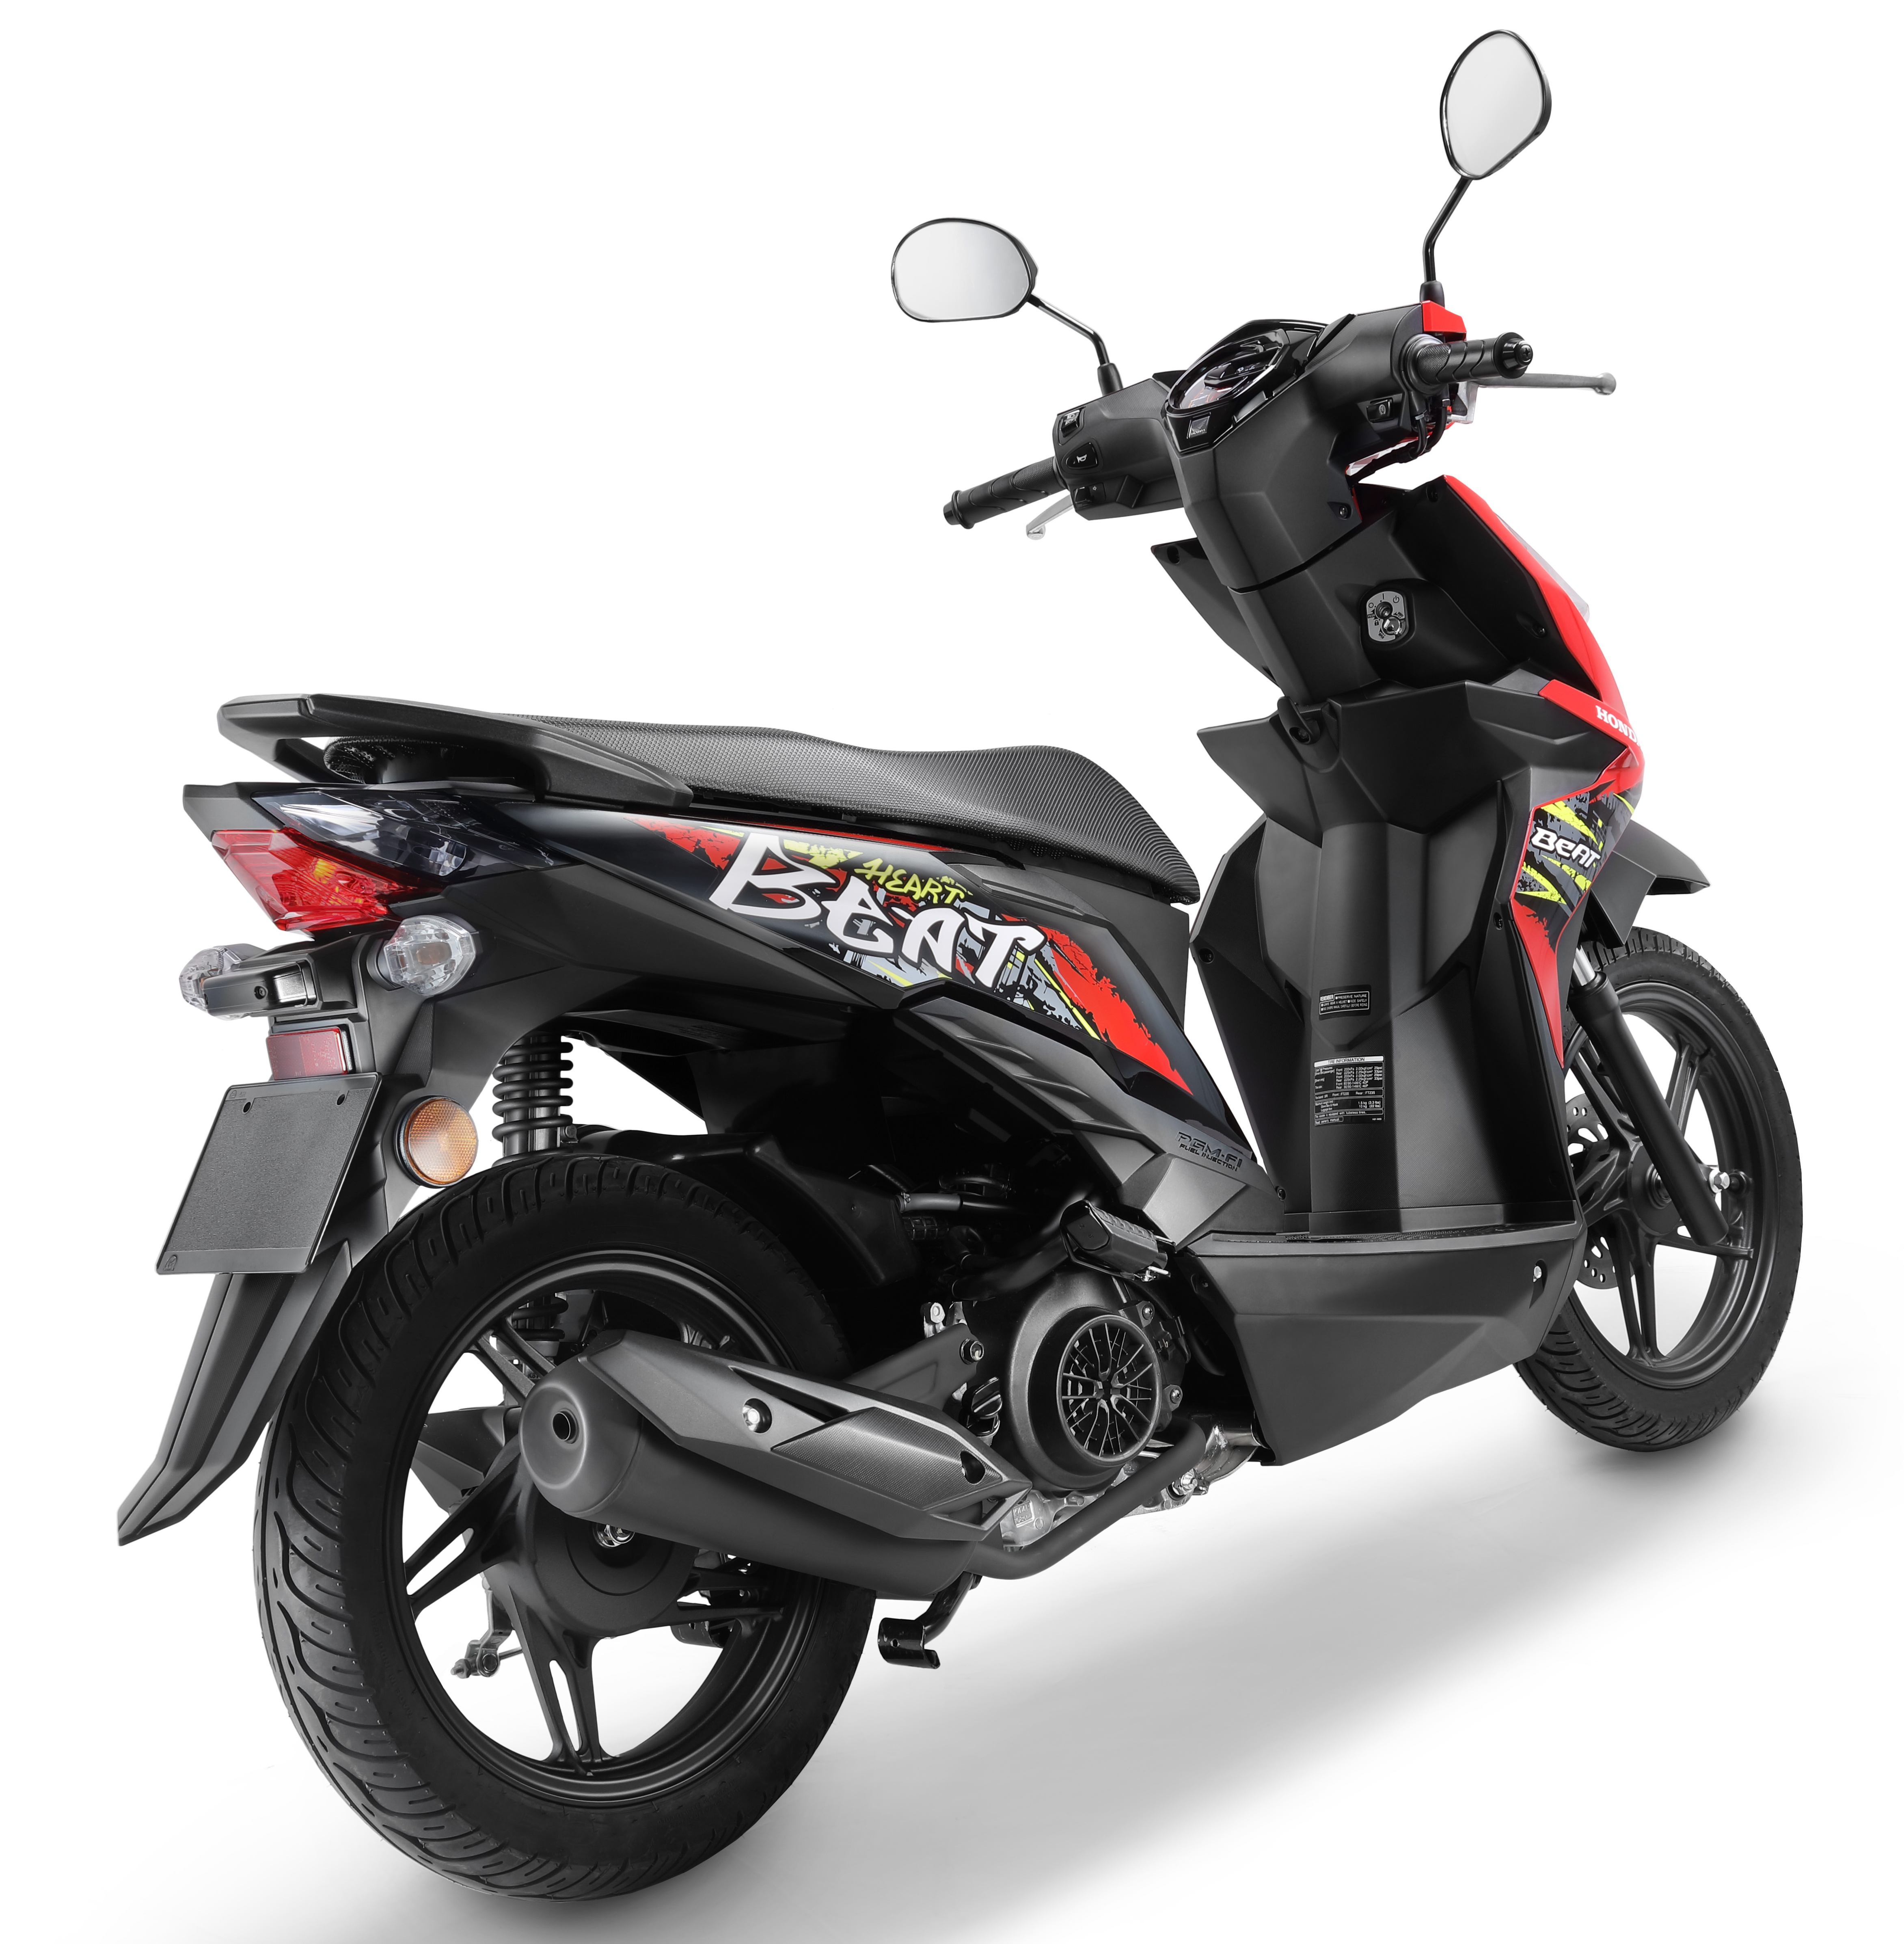 2018 Honda BeAT scooter now on sale – RM5,724 Paul Tan - Image 739948 for Honda Motorcycle Scooter 2018  585eri